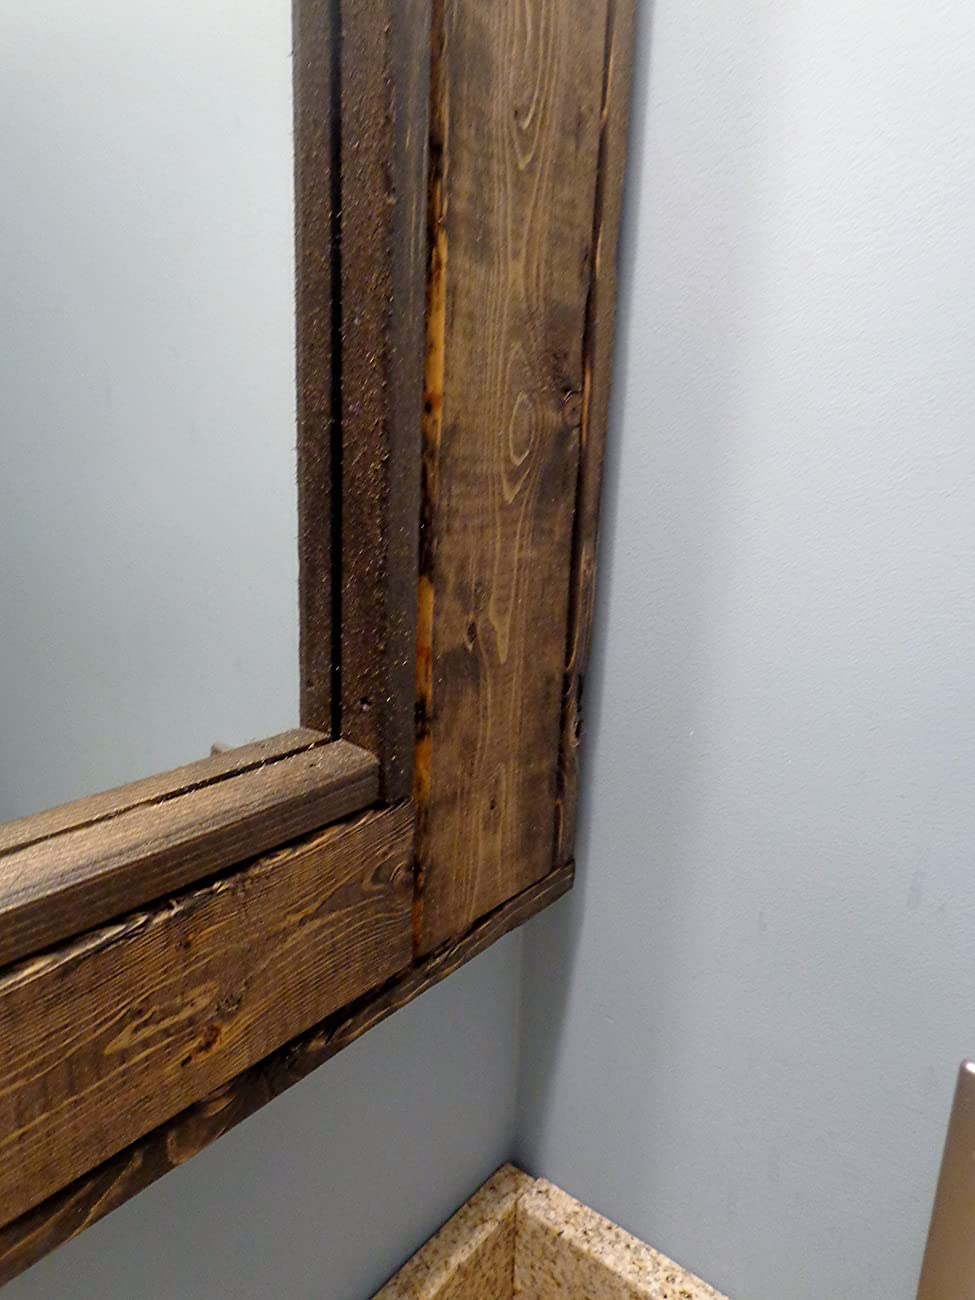 Bathroom Vanity Window Mirror - Reclaimed Wood Mirror - Large Wall Mirror - Rustic Modern Home - Home Decor - Mirror - Housewares - Woodwork	 2